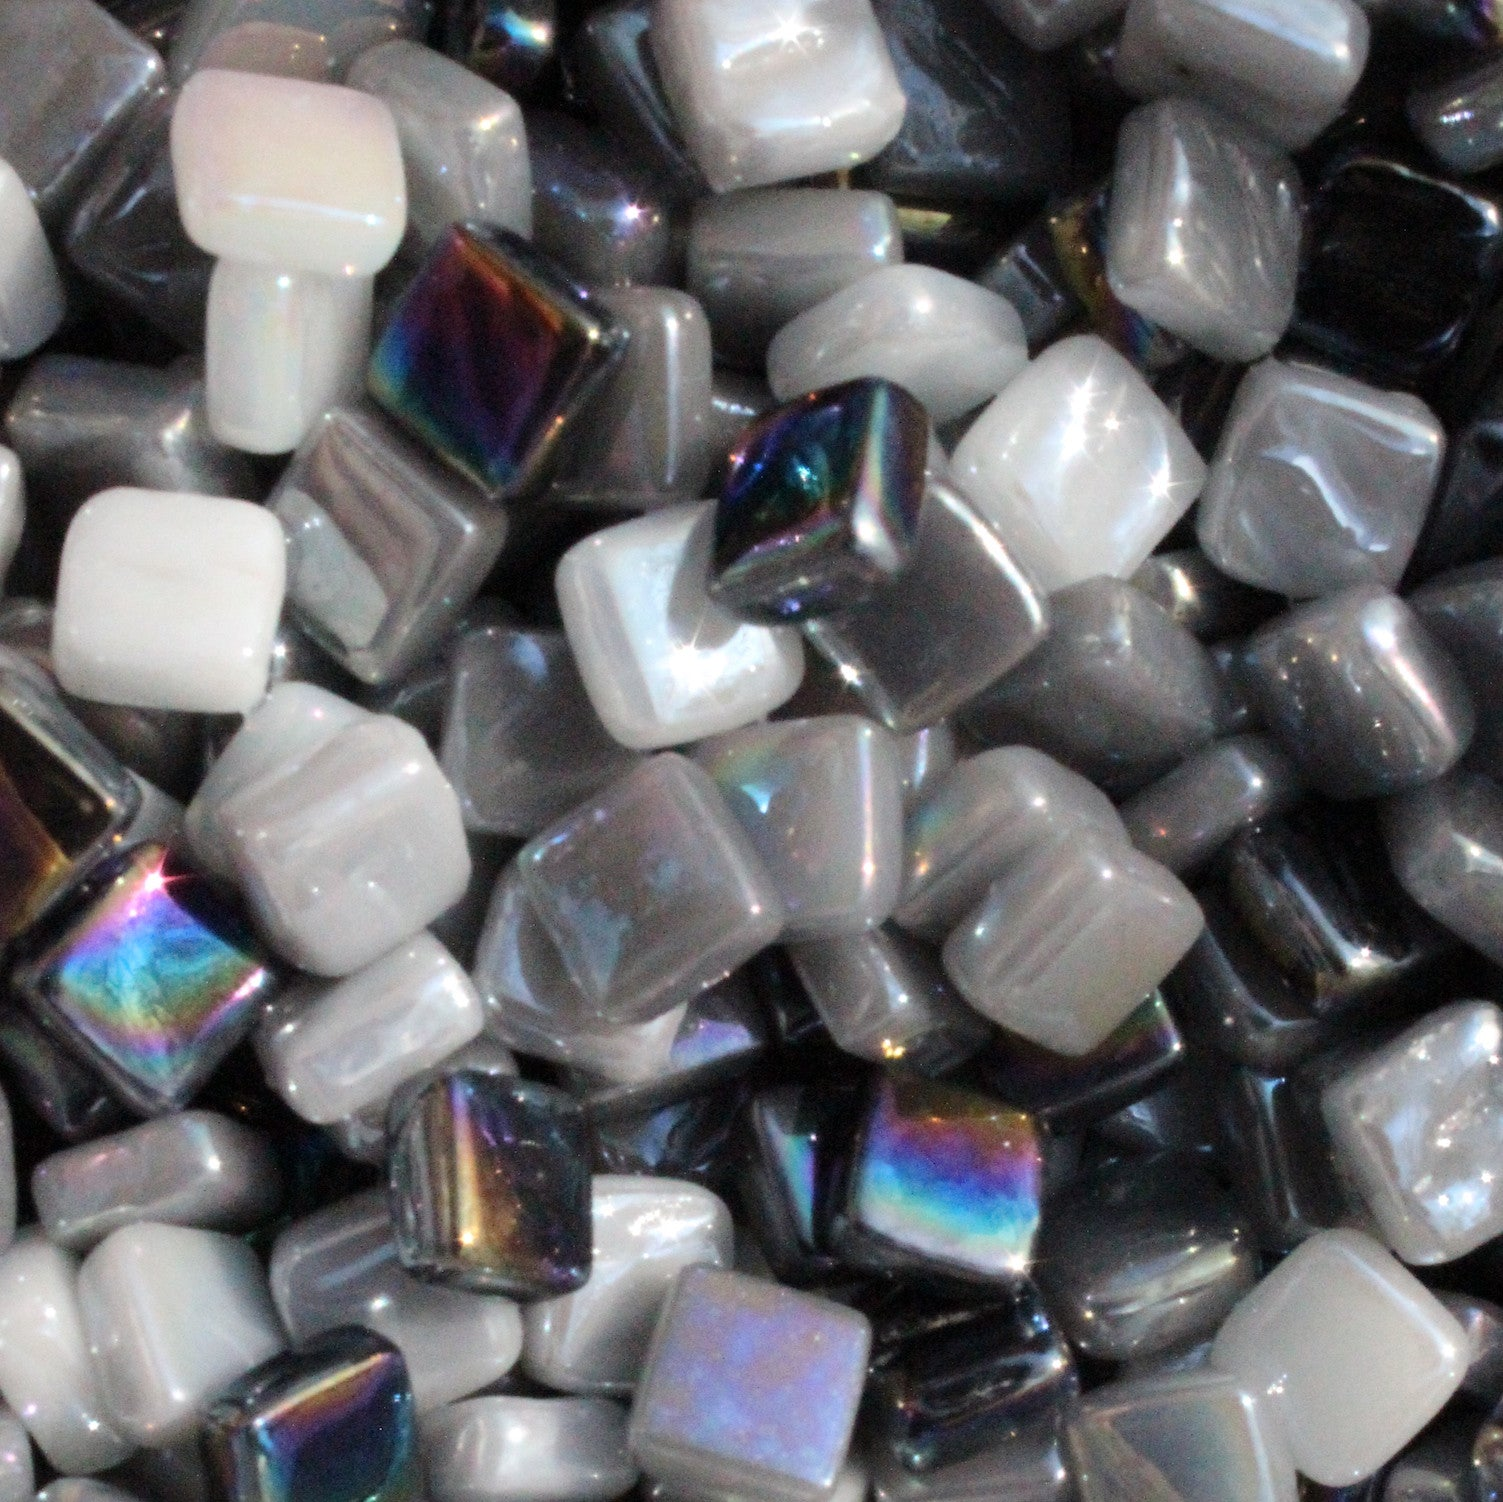 8mm - Black, Whites, Grays - Iridescent8mm Assortments - Kismet Mosaic